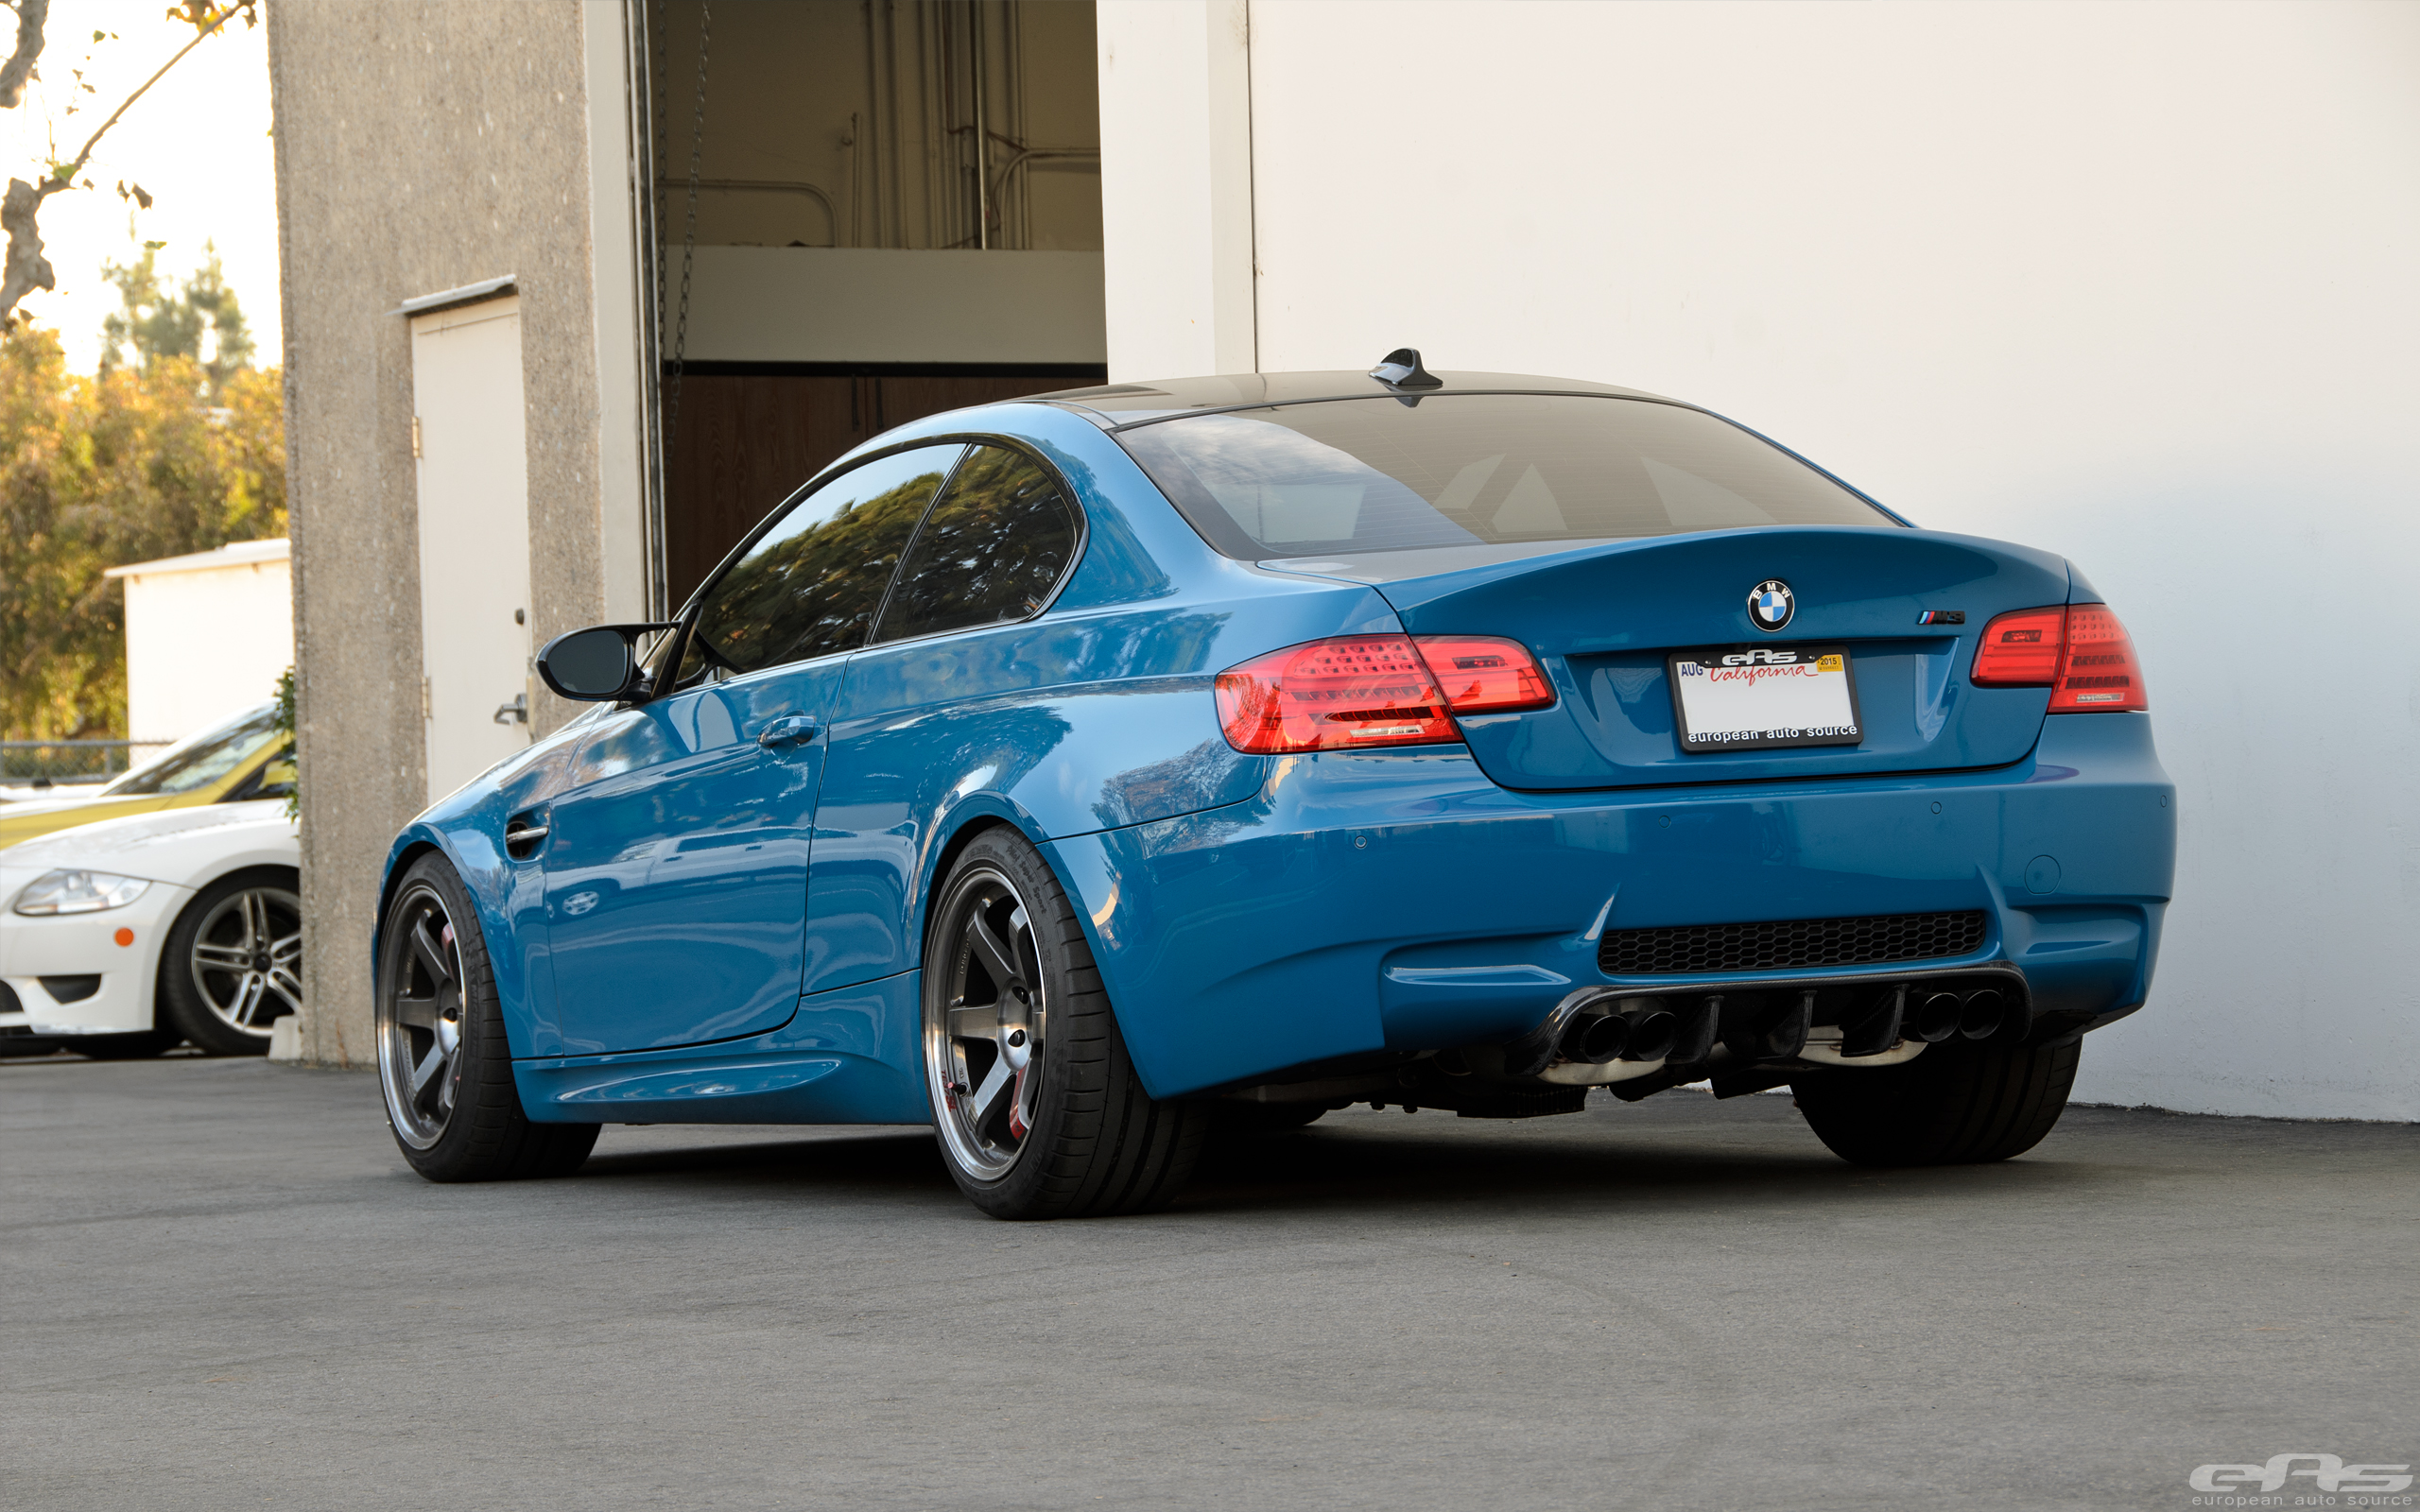 Laguna Seca Blue E92 M3 Build Bmw Performance Parts